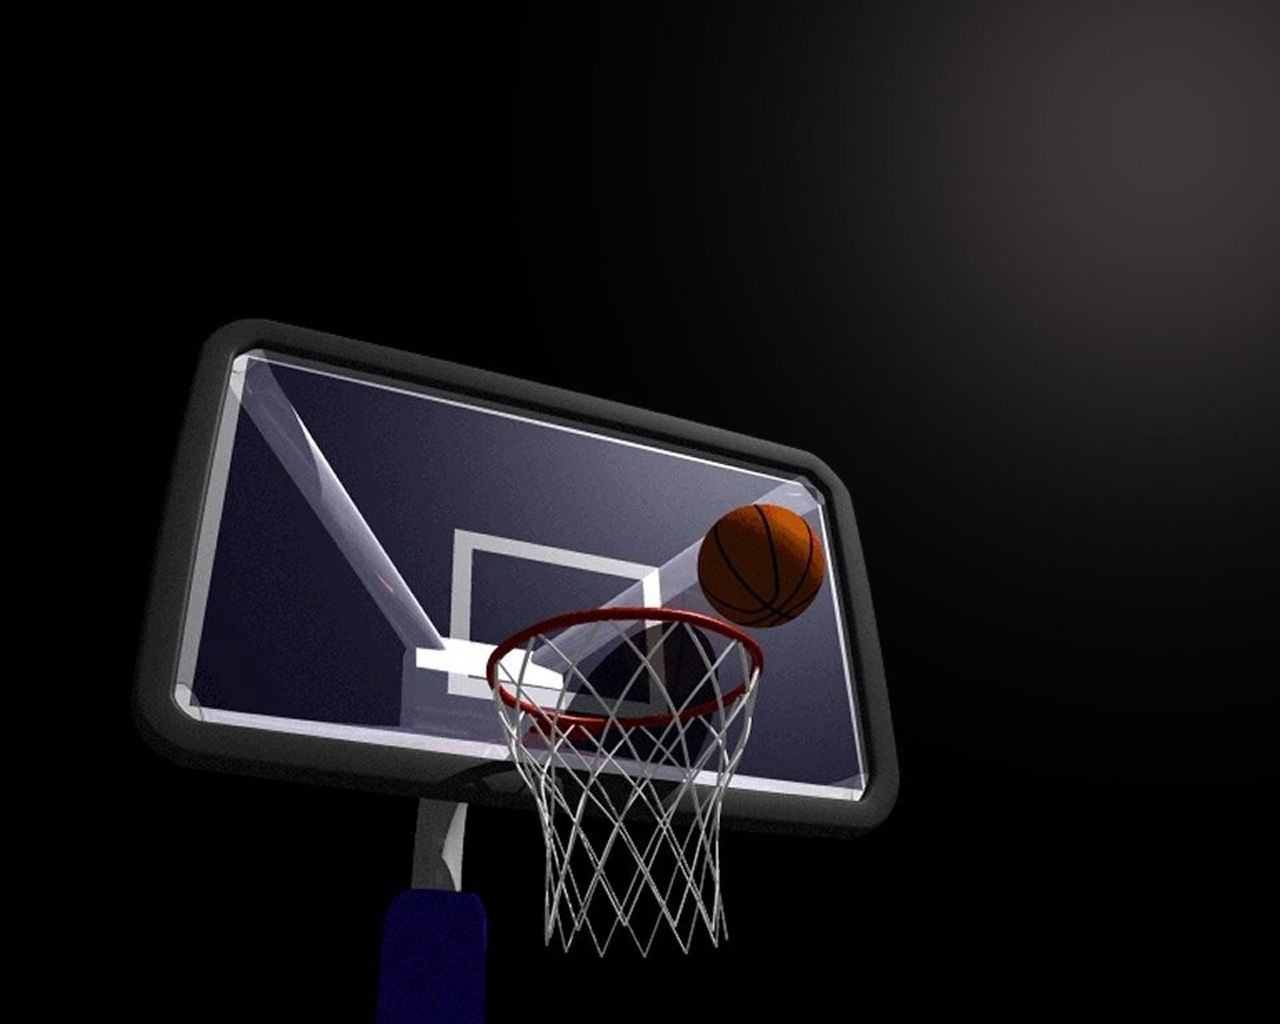 Best Basketball Hd Wallpapers Backgrounds Wallpaper 1920×1080 Basket Wallpapers 40 Wallpapers 400 x 300